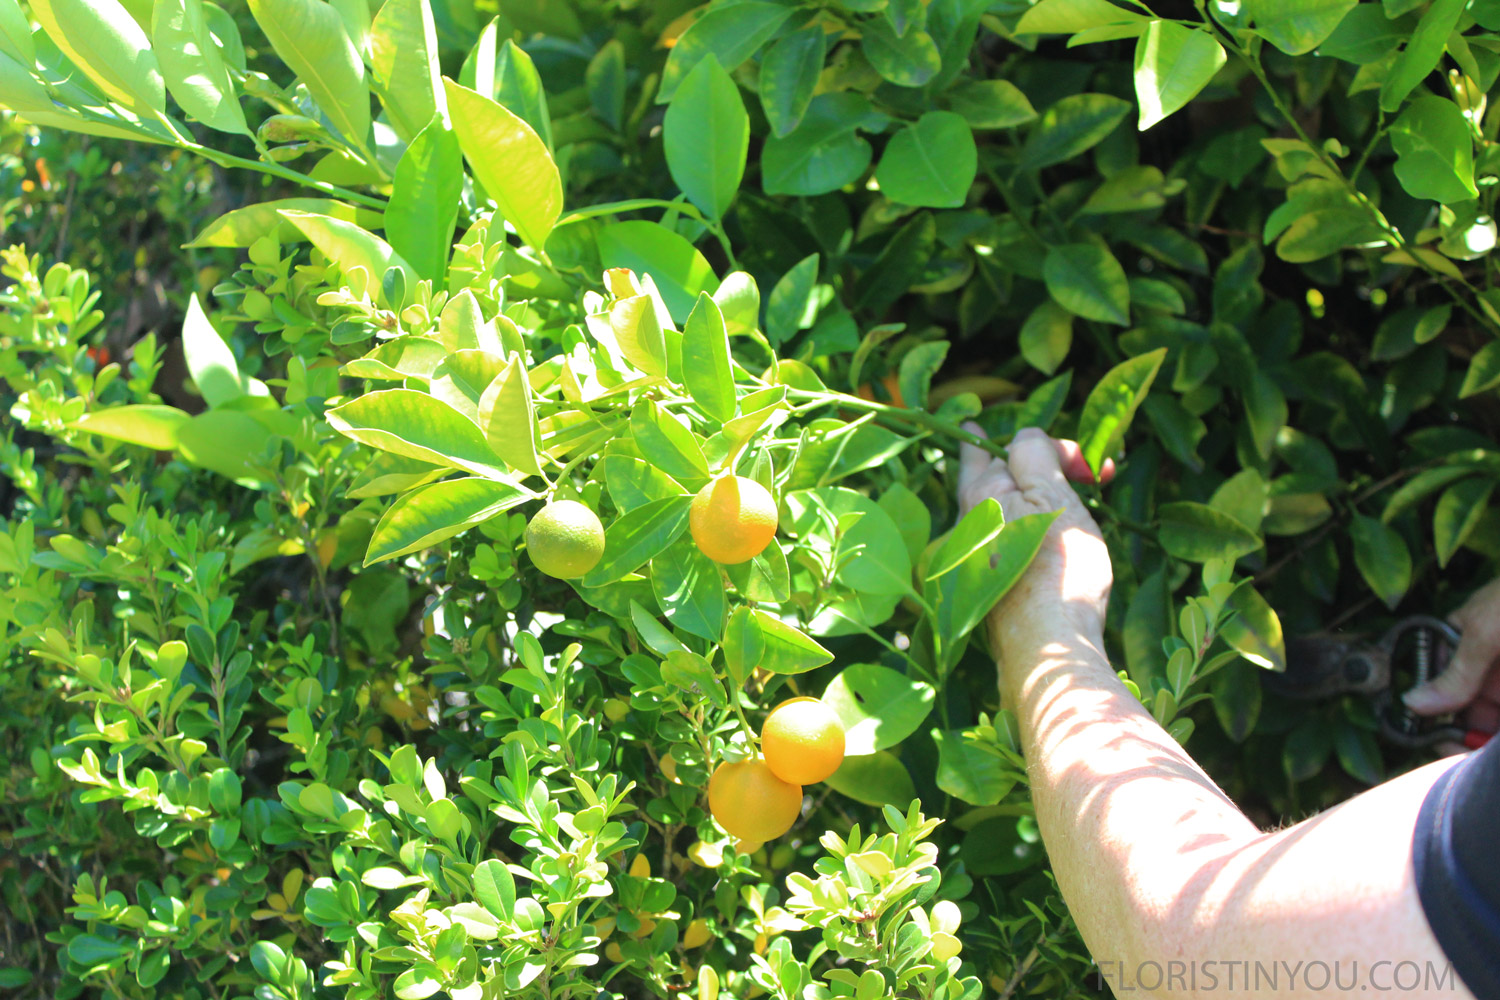 Cut 6 stems. This is called a Calamondin Lime tree.